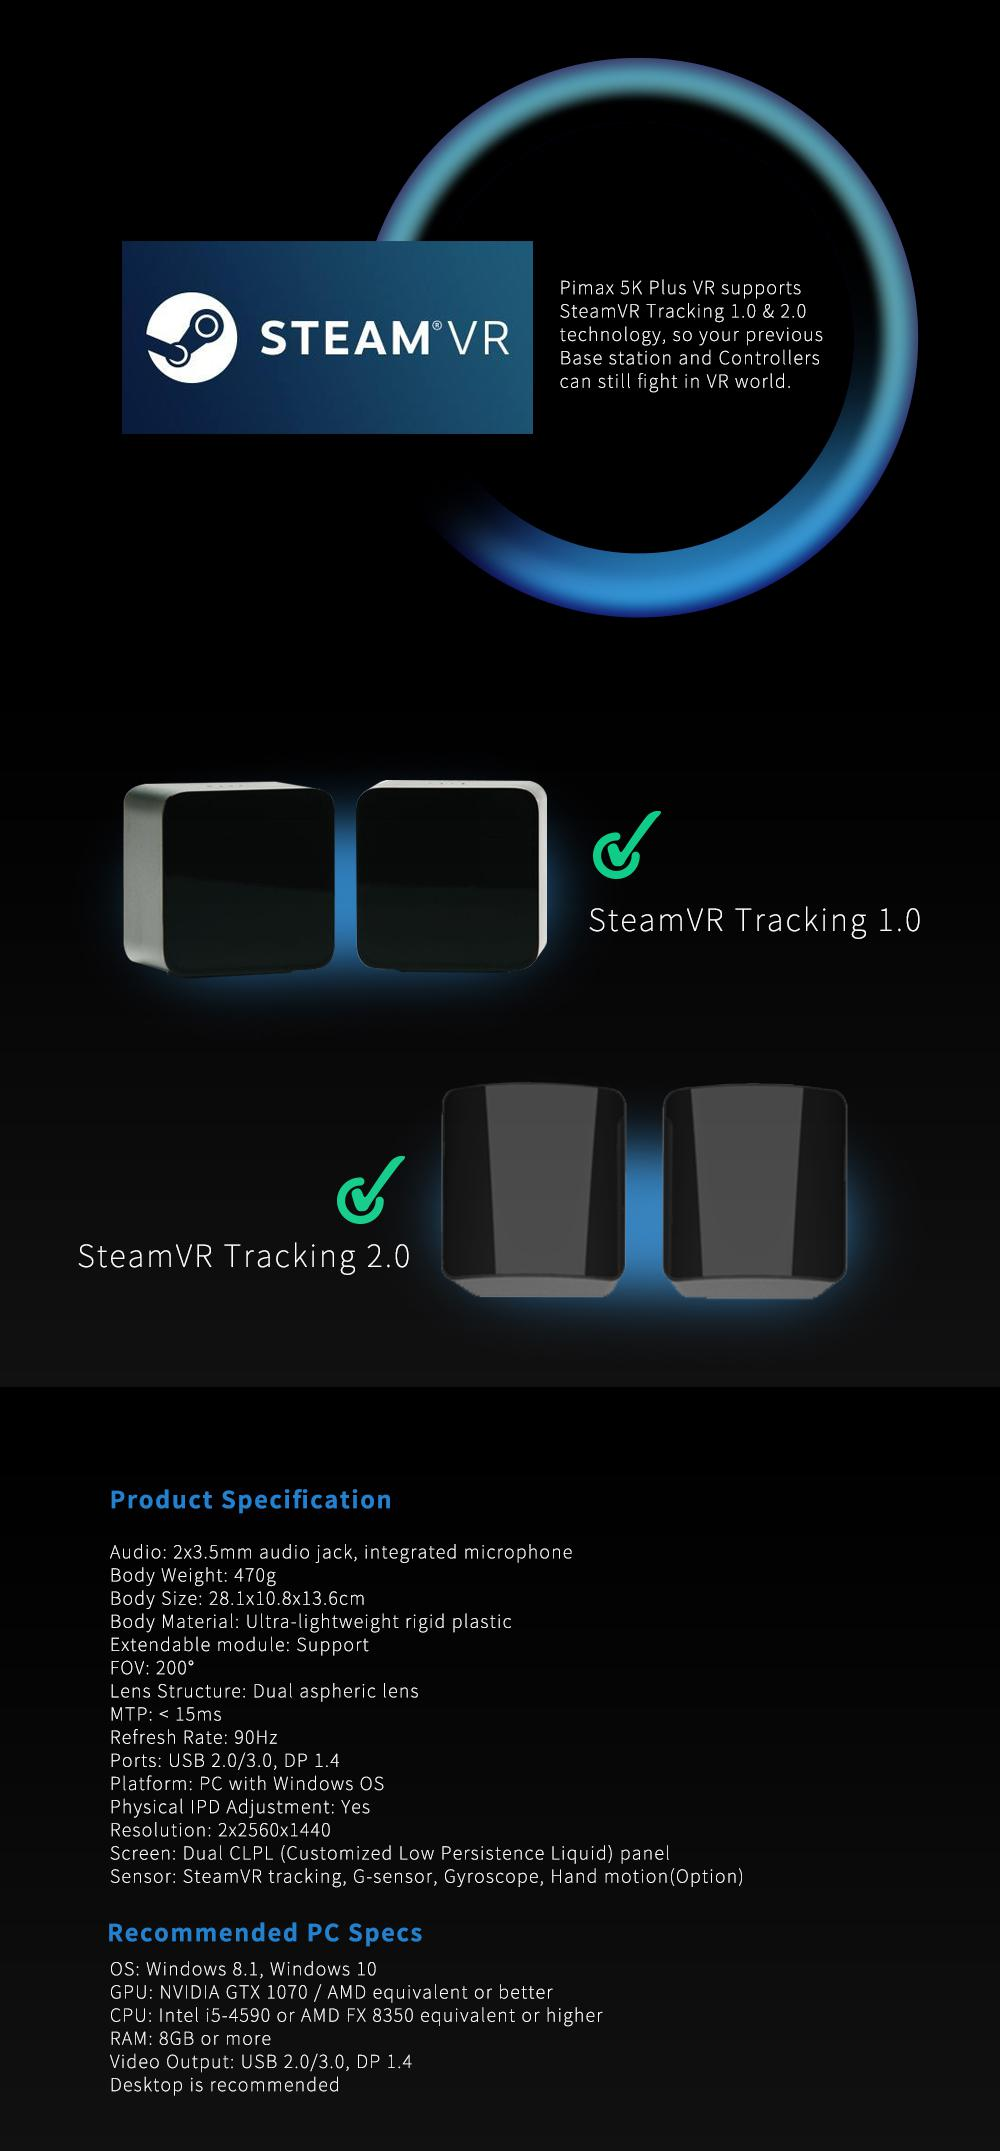 PIMAX 5K Plus Virtual Reality Headset VR Headset 3D VR Glasses for PC VR  Game Video